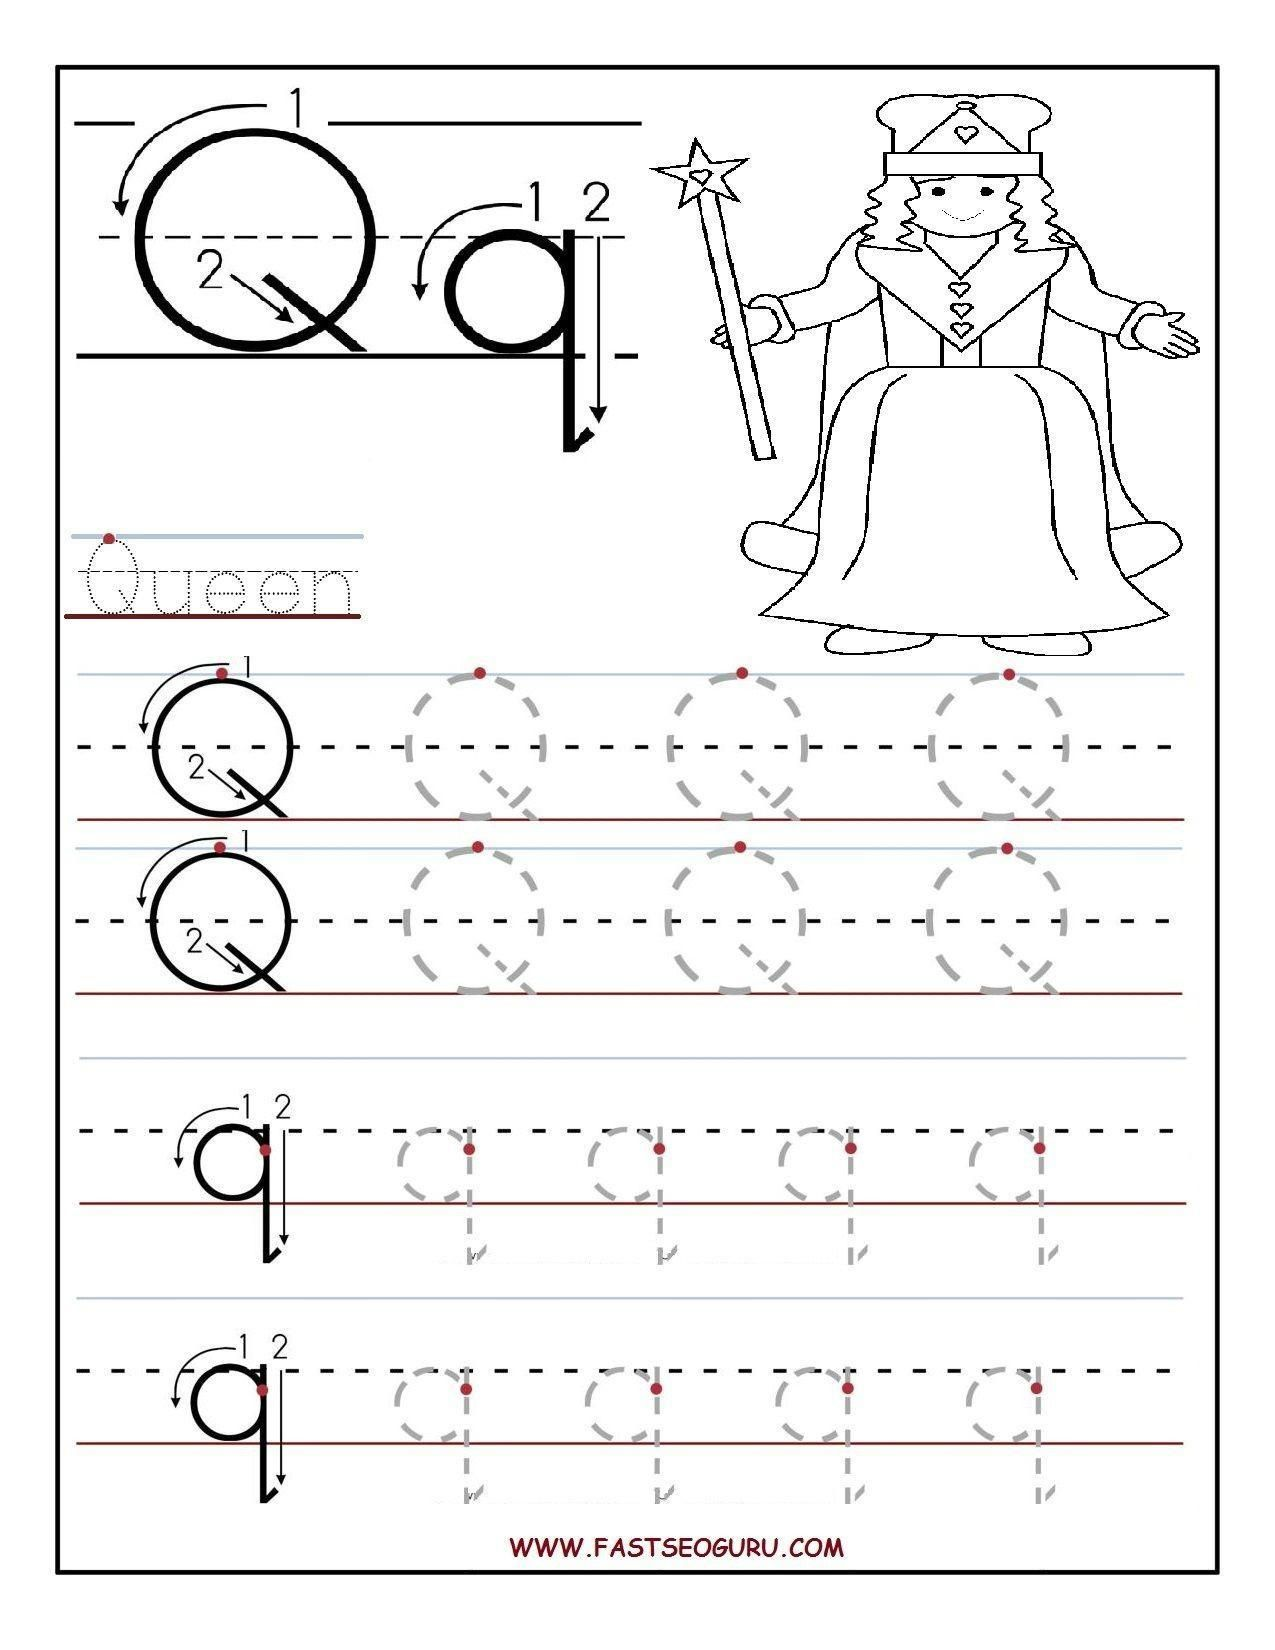 Letter Tracing Templates Preschool In